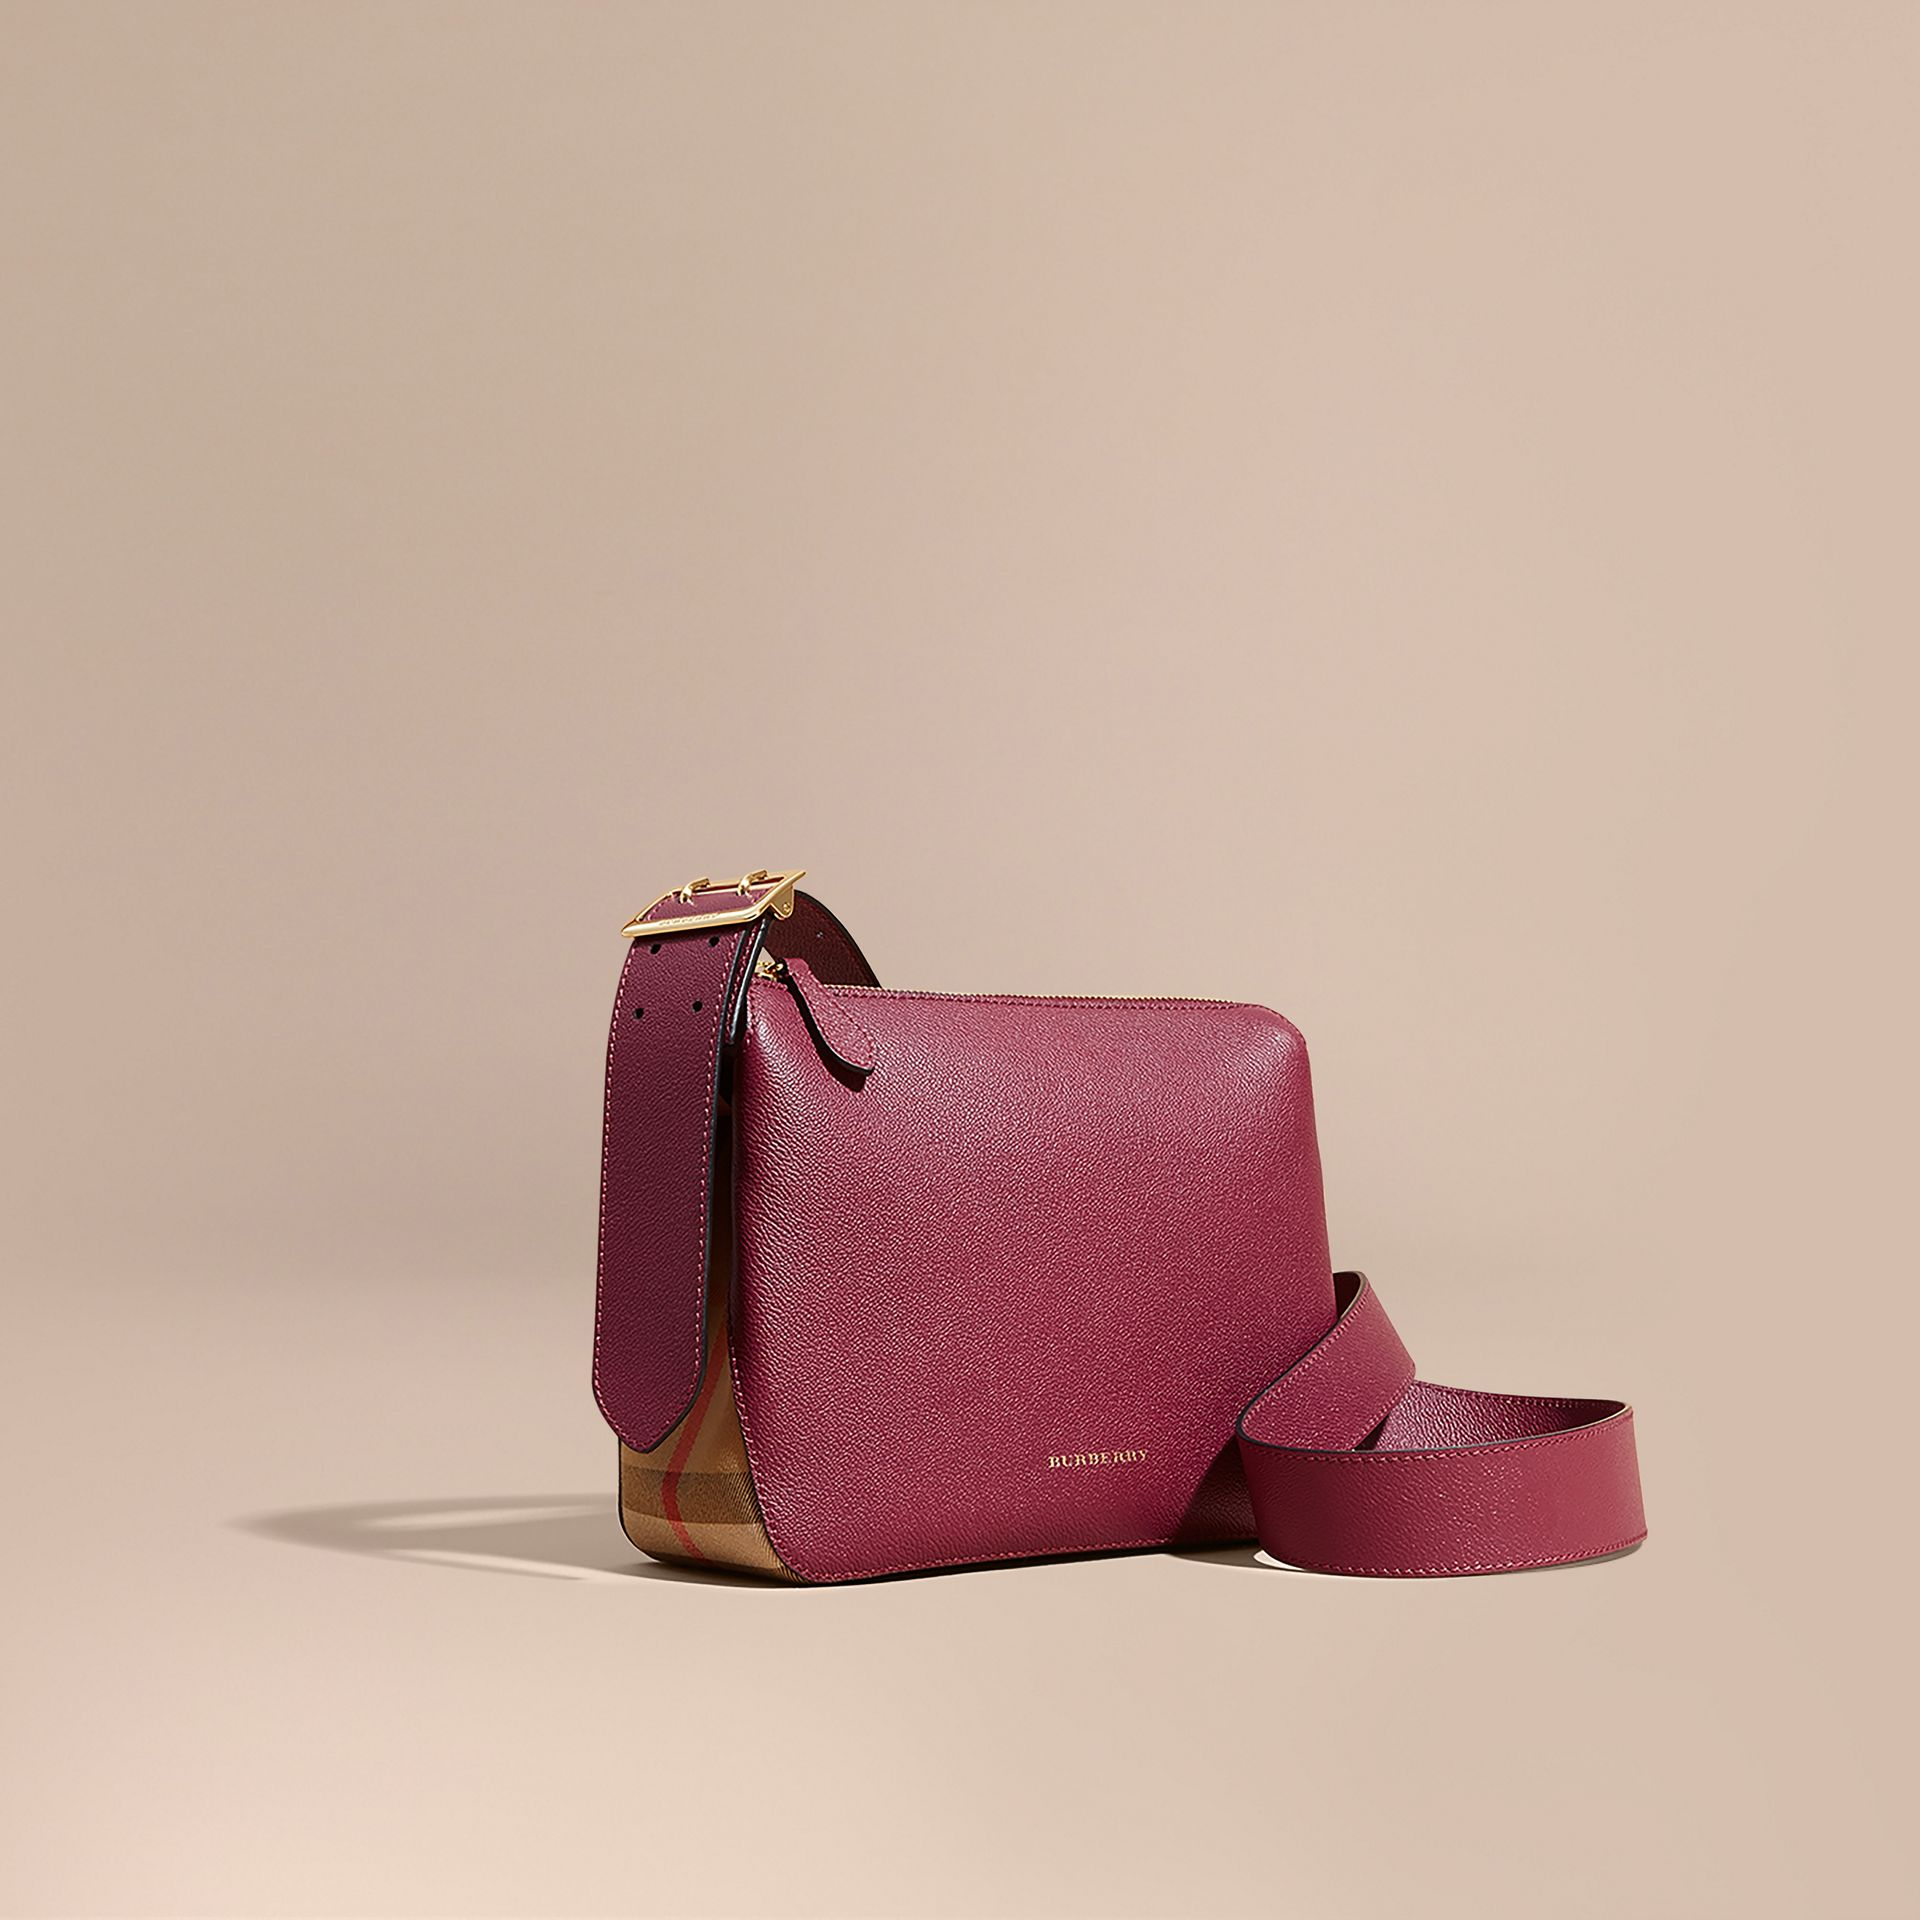 Dark plum Buckle Detail Leather and House Check Crossbody Bag Dark Plum - gallery image 1